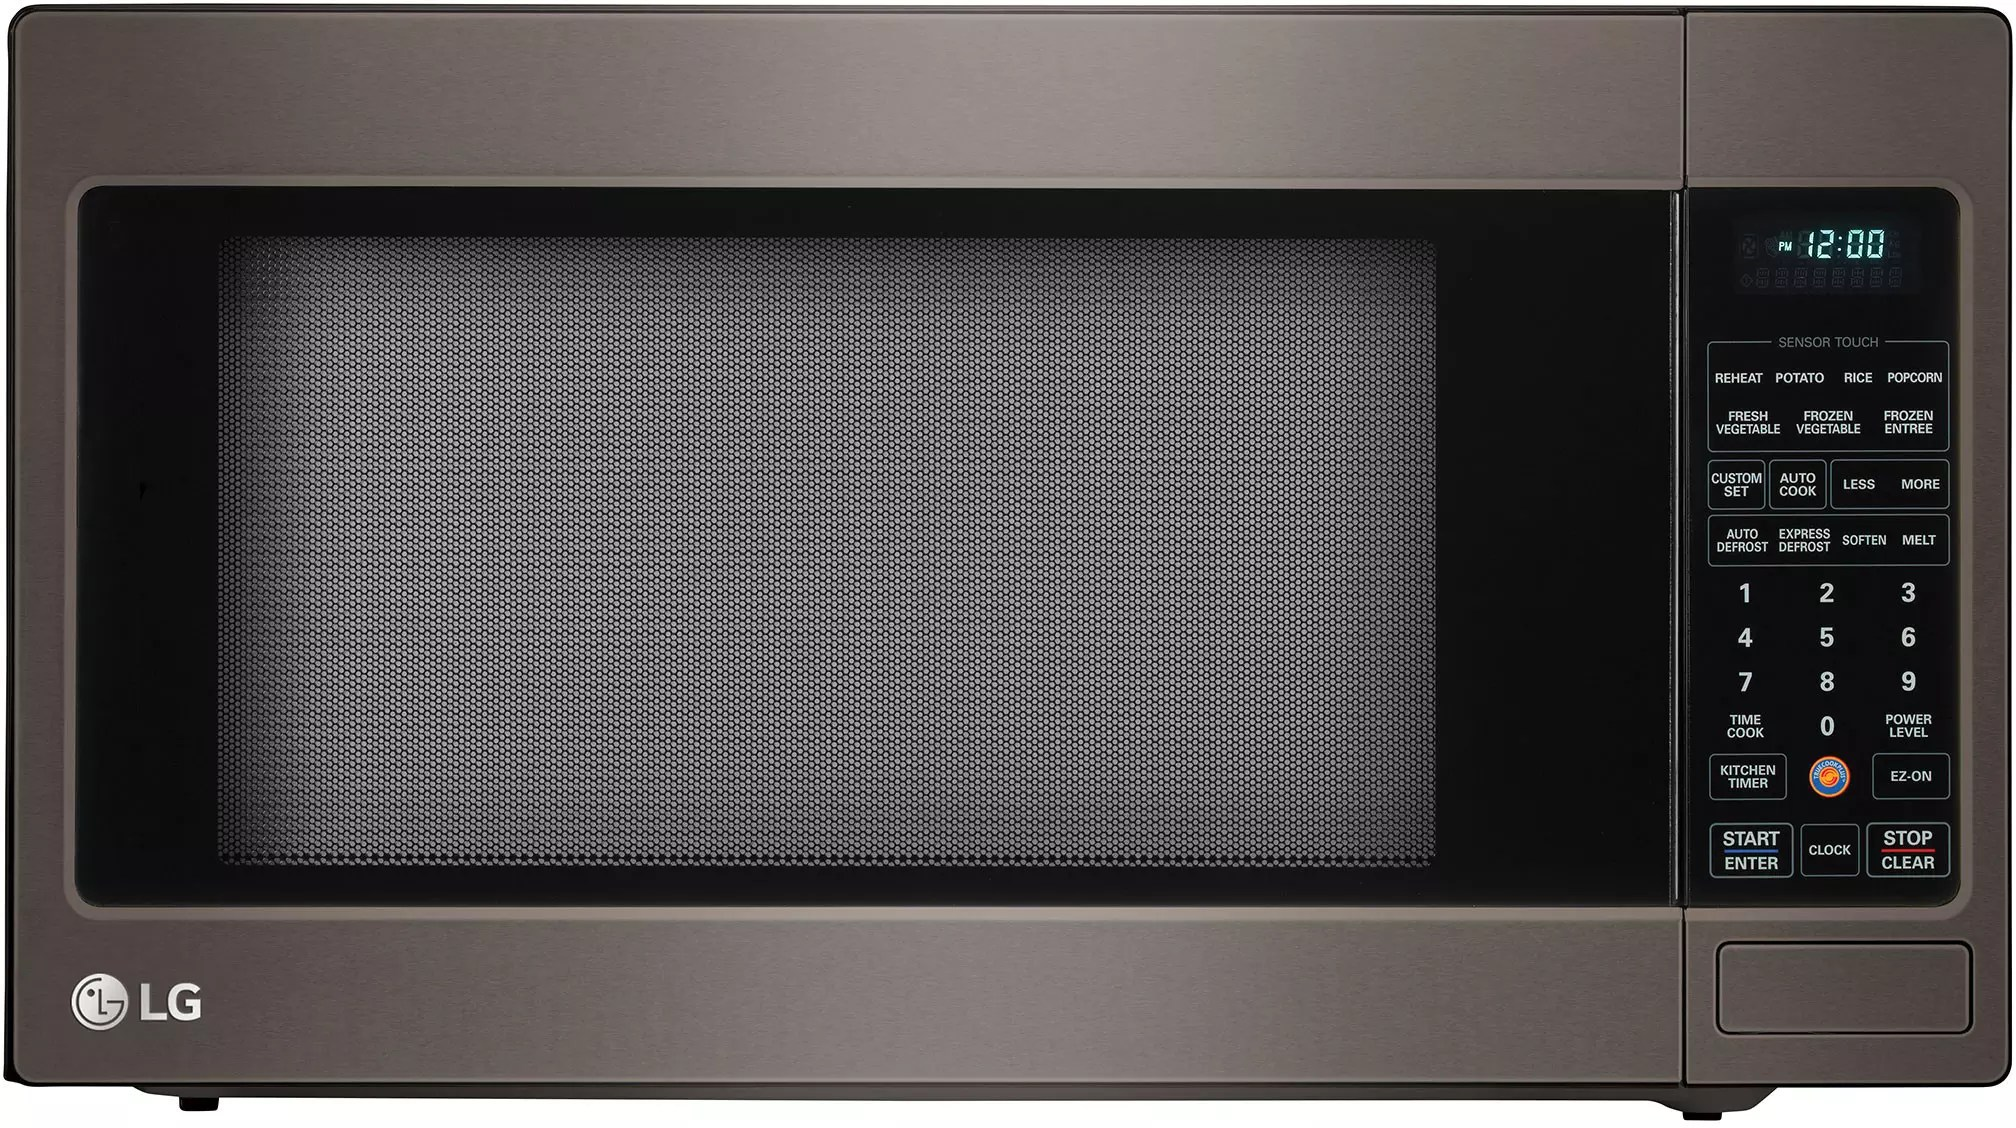 black stainless steel kitchen floral curtains lg lcrt2010bd 2.0 cu. ft. countertop microwave oven with ...